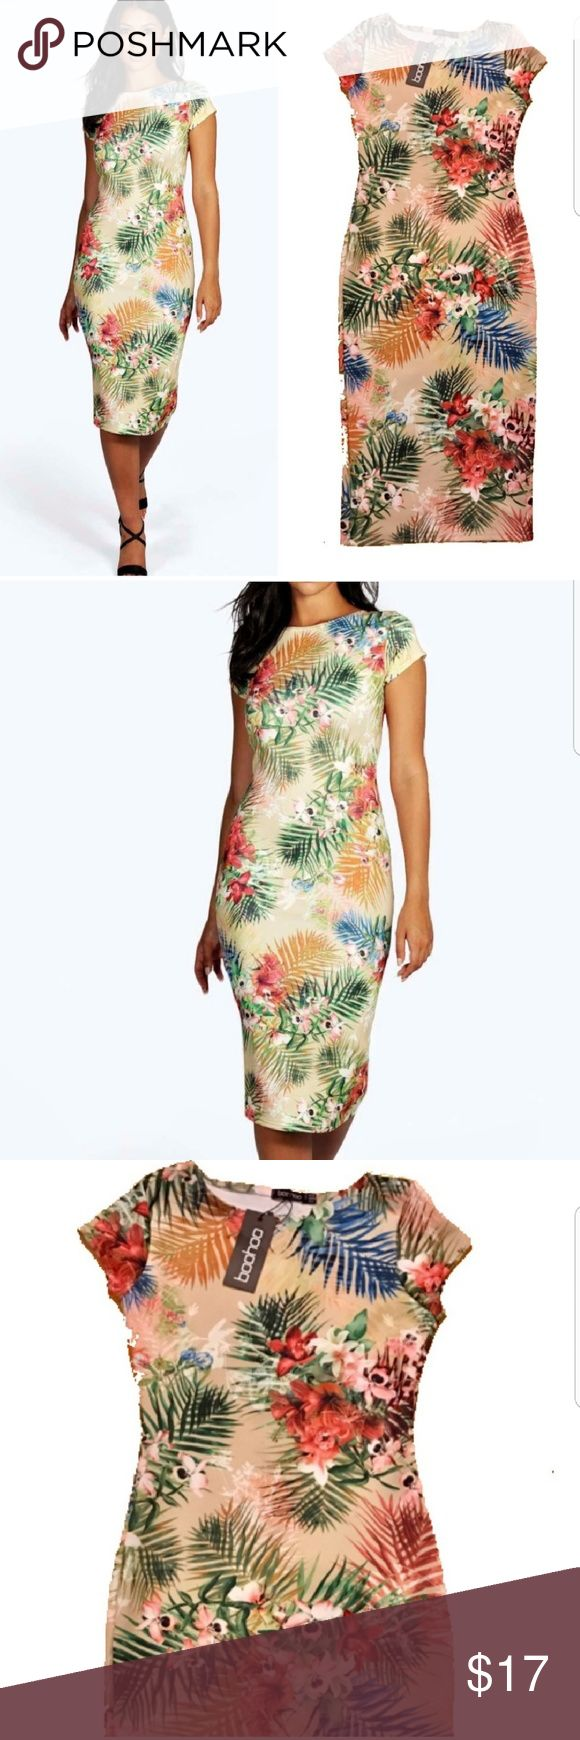 💋Boohoo Tropical Dress Sasha cap sleeve Midi dress UK 10 US 6 Not skimpy thin material - nice & structured to give you hold with contoured shape  New with tags 🏷 Price Firm🔒 Ships next day🚀 Take advantage of my bundle discount👌🎁 Boohoo Dresses Midi